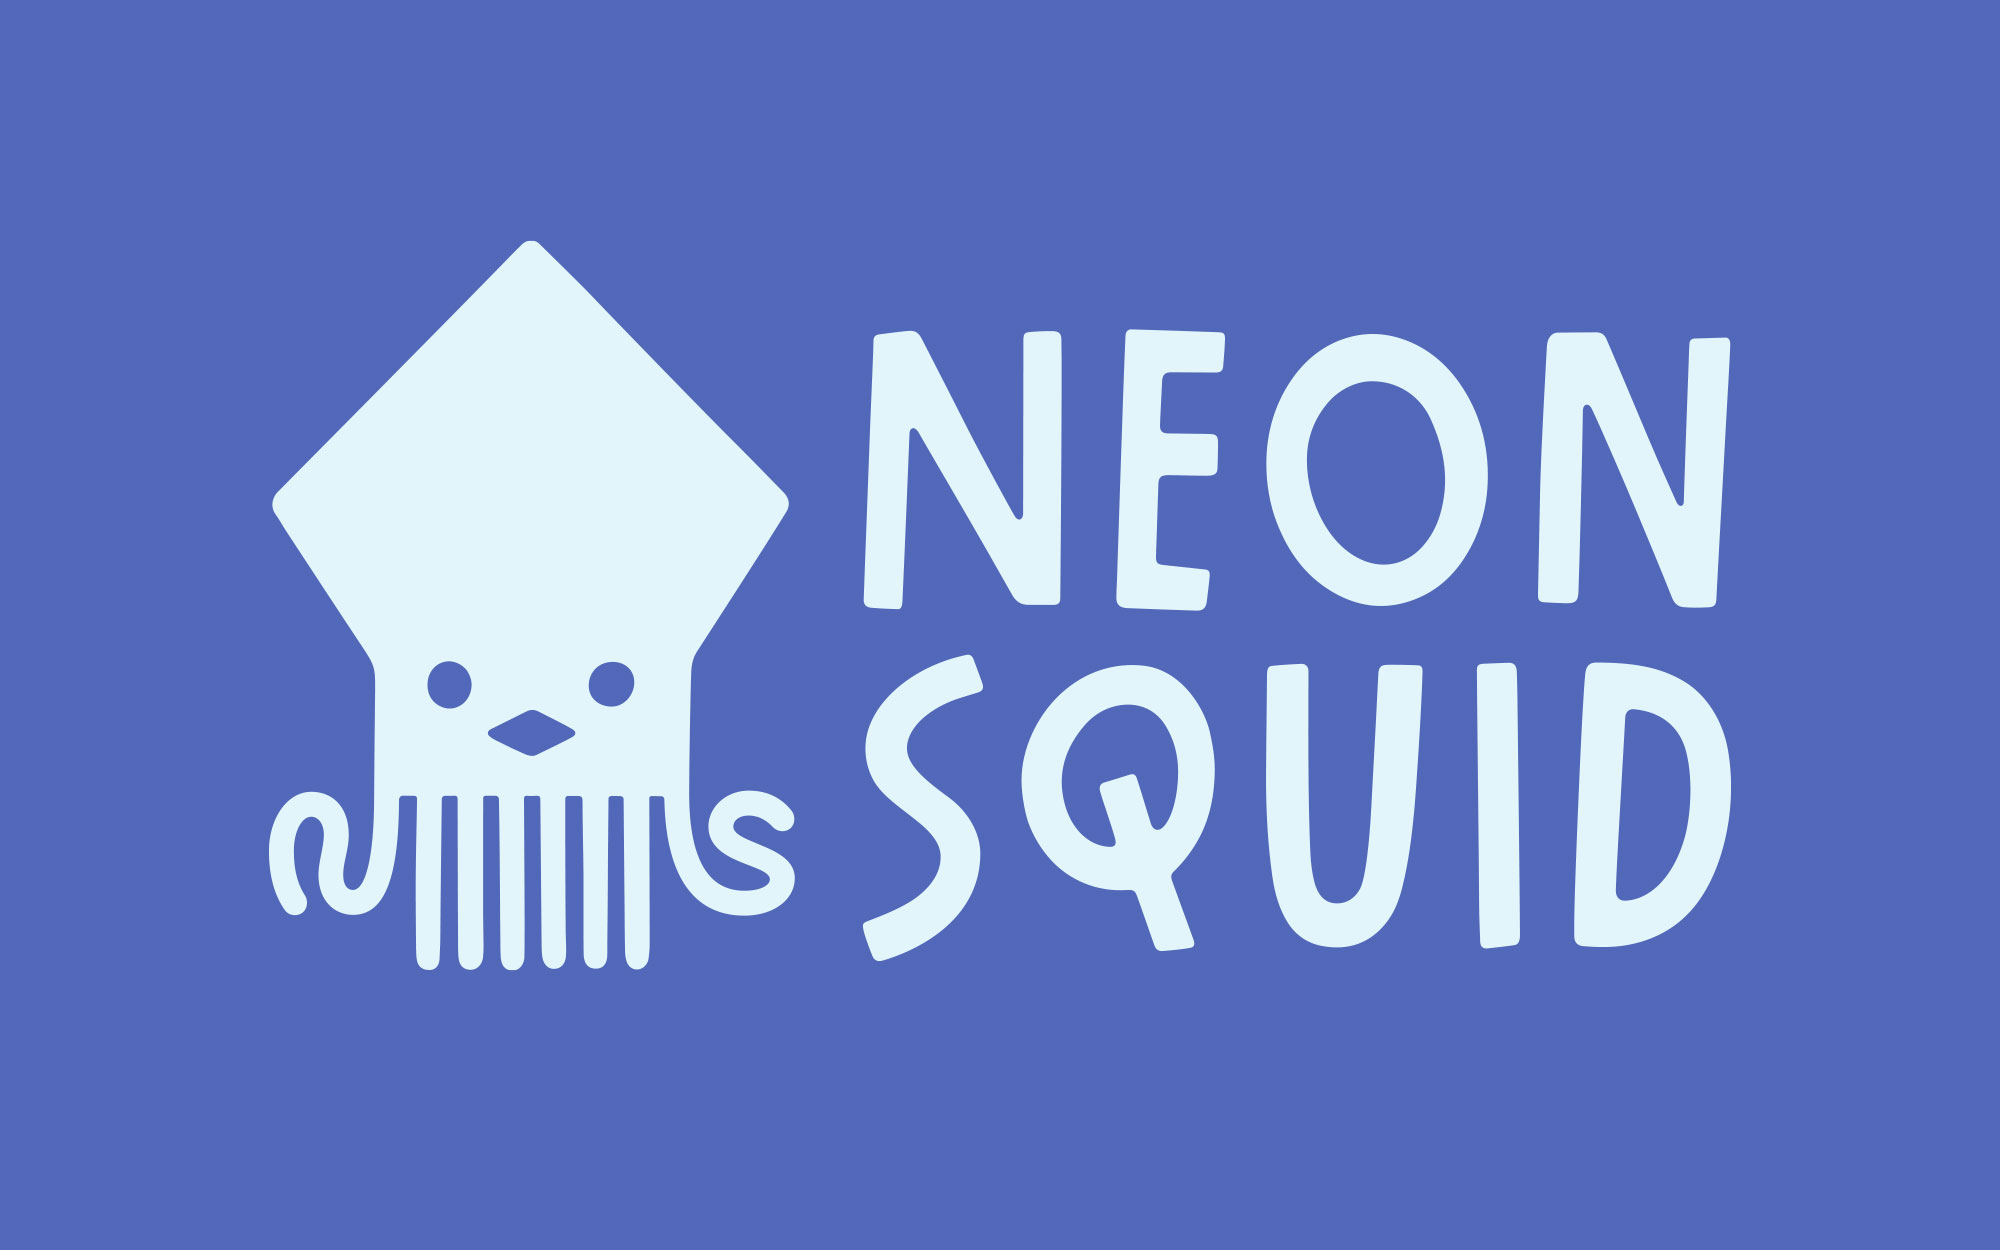 Logo for Neon Squid— this time in light blue, on a dark blue background.